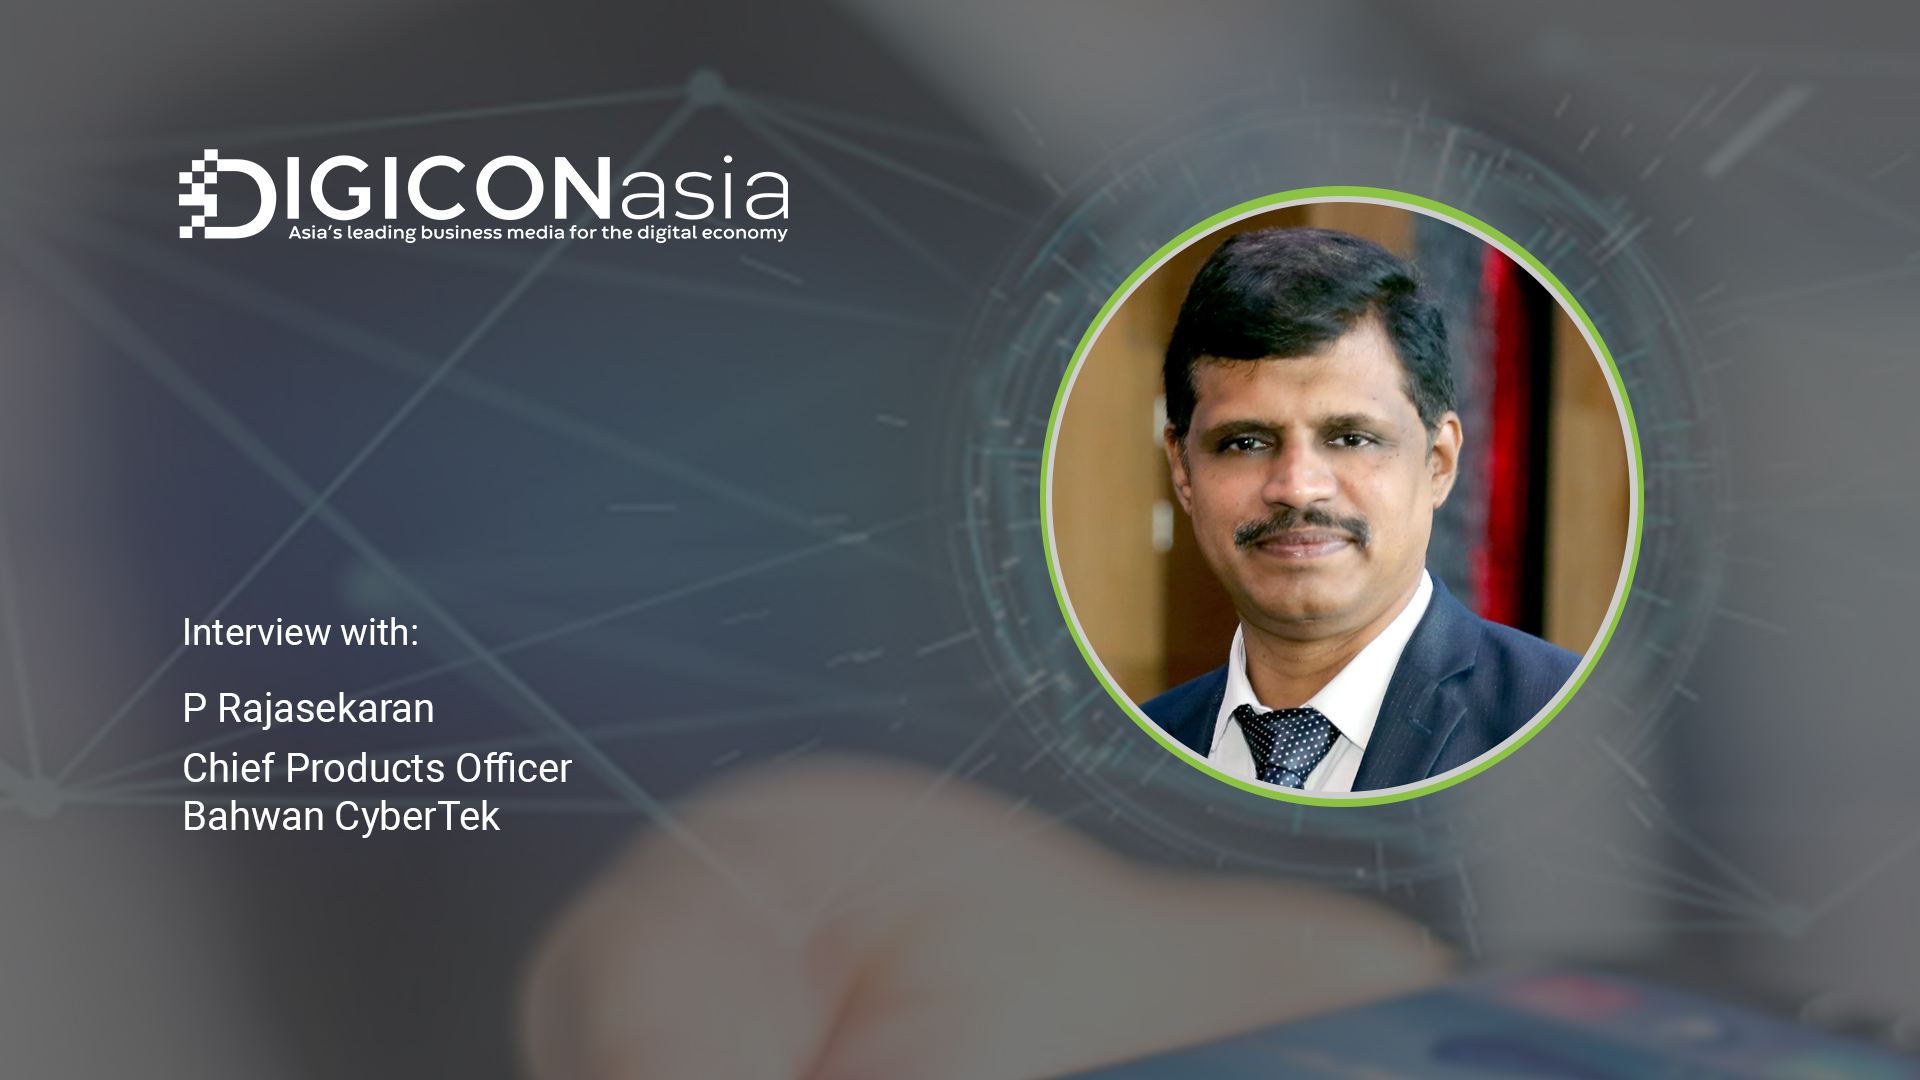 Planting the seeds of digital transformation in India's grass roots